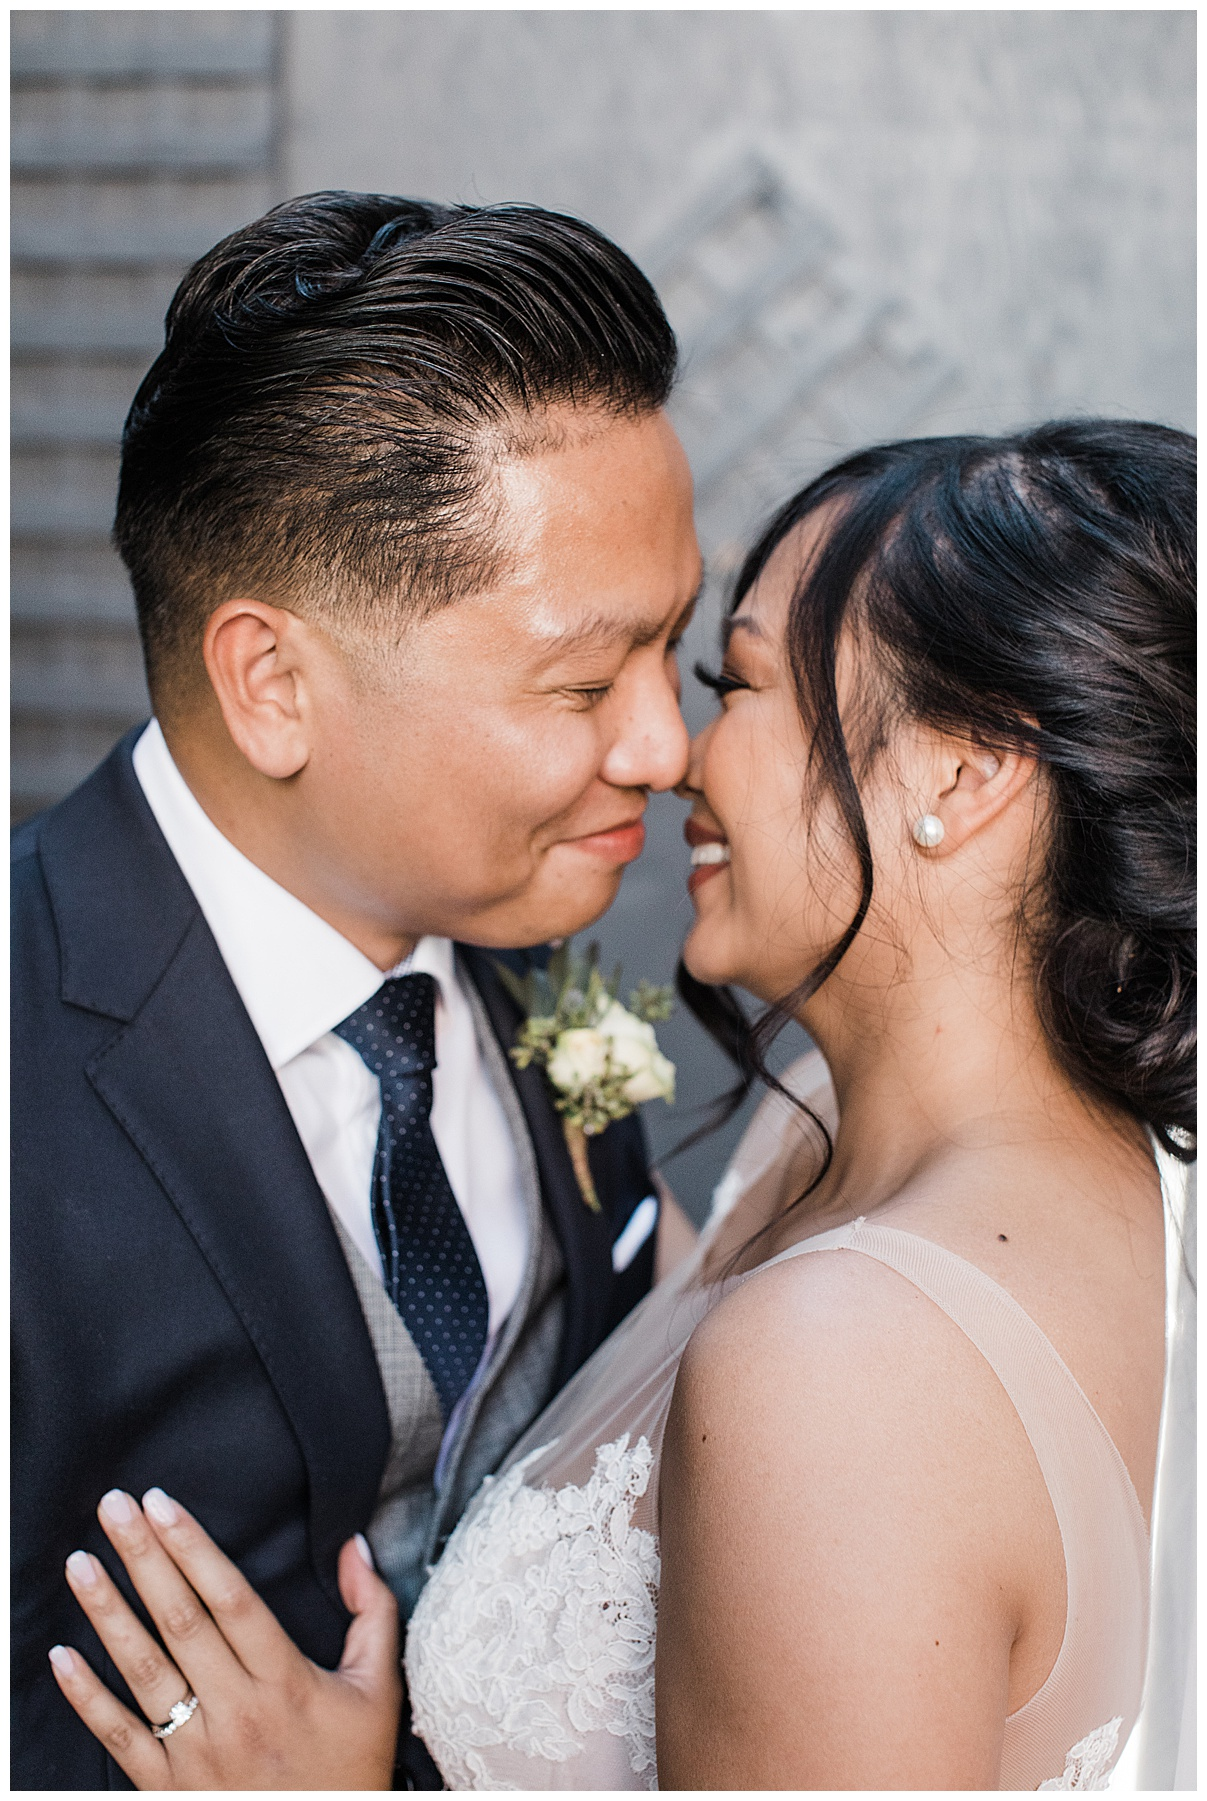 Bride and groom nearly kiss| The George Restaurant Wedding| Toronto Wedding Photographer| Ontario wedding photographer| 3photography